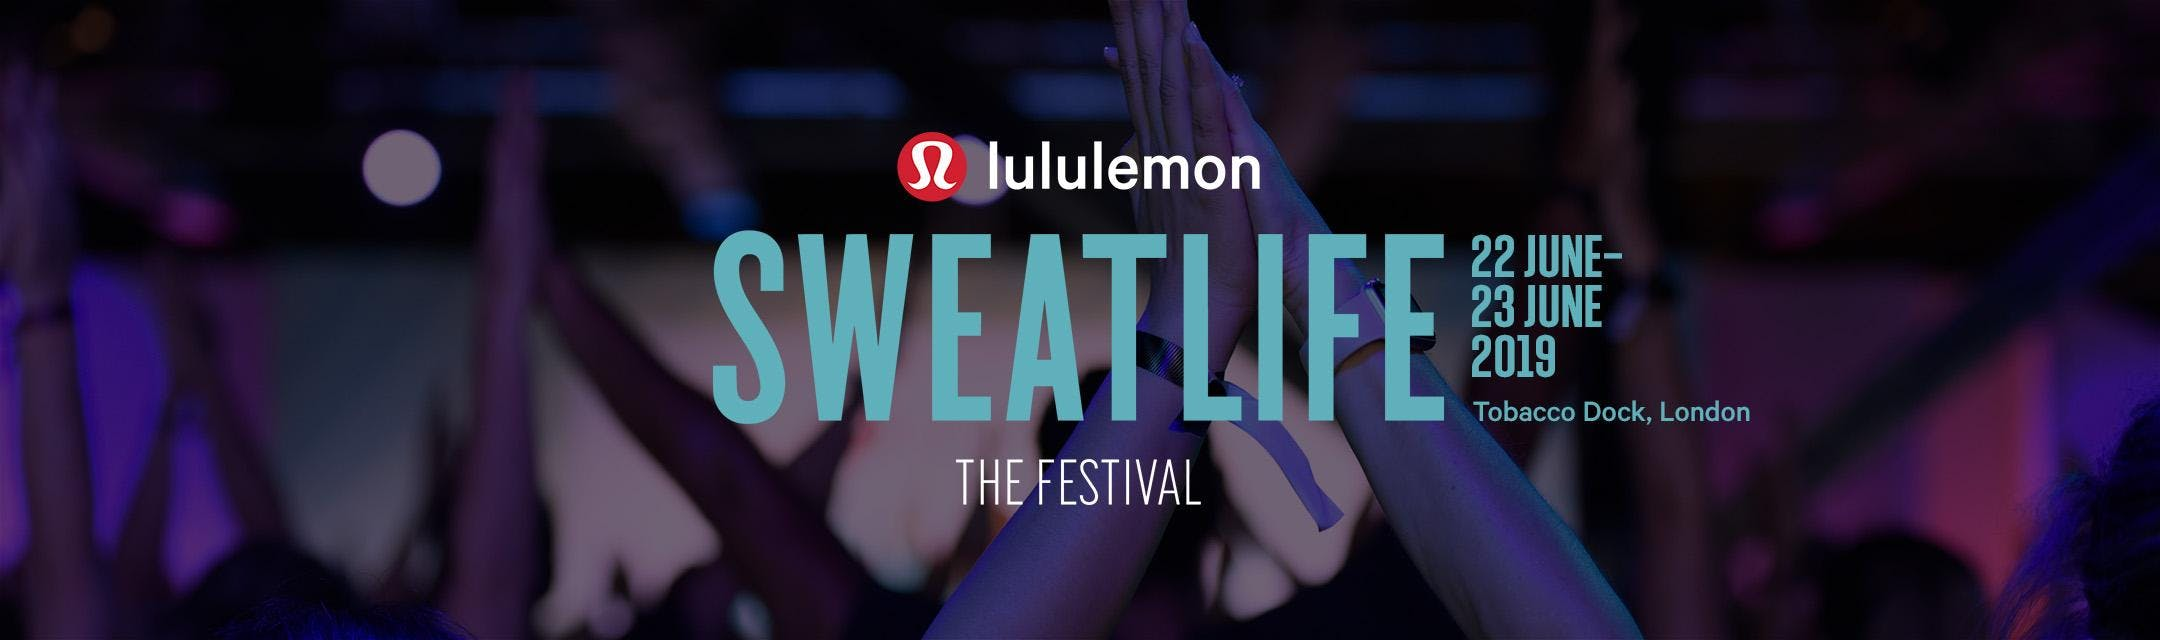 SWEATLIFE THE FESTIVAL LONDON 2019